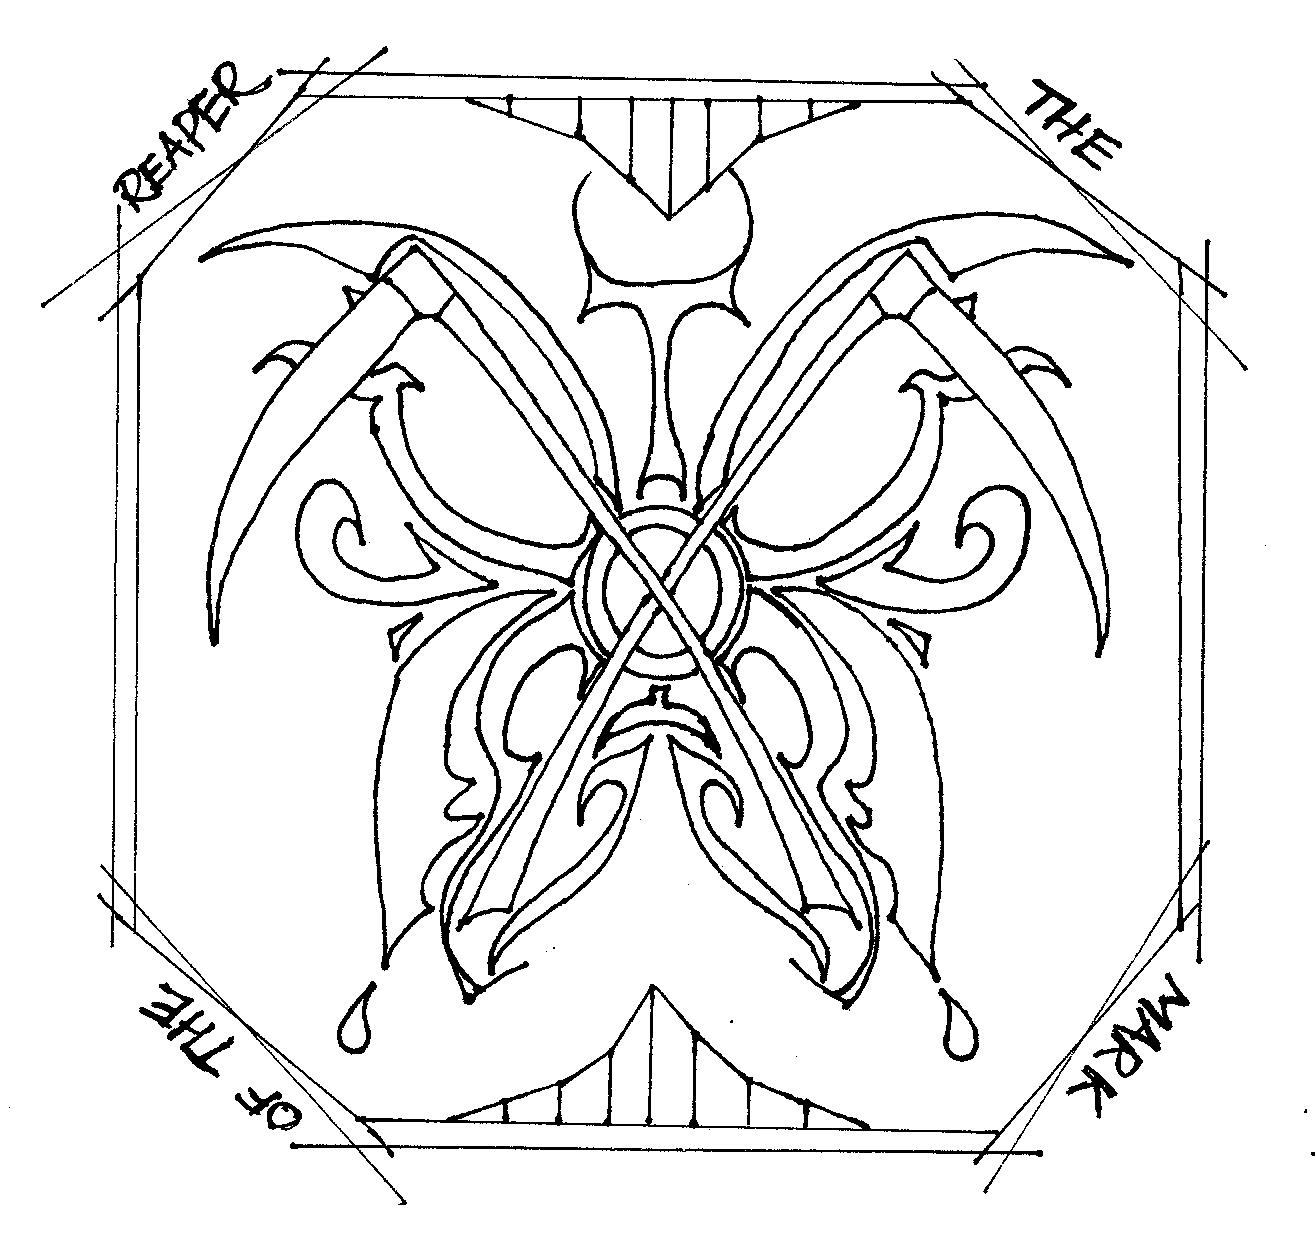 hades symbol coloring pages - photo#36